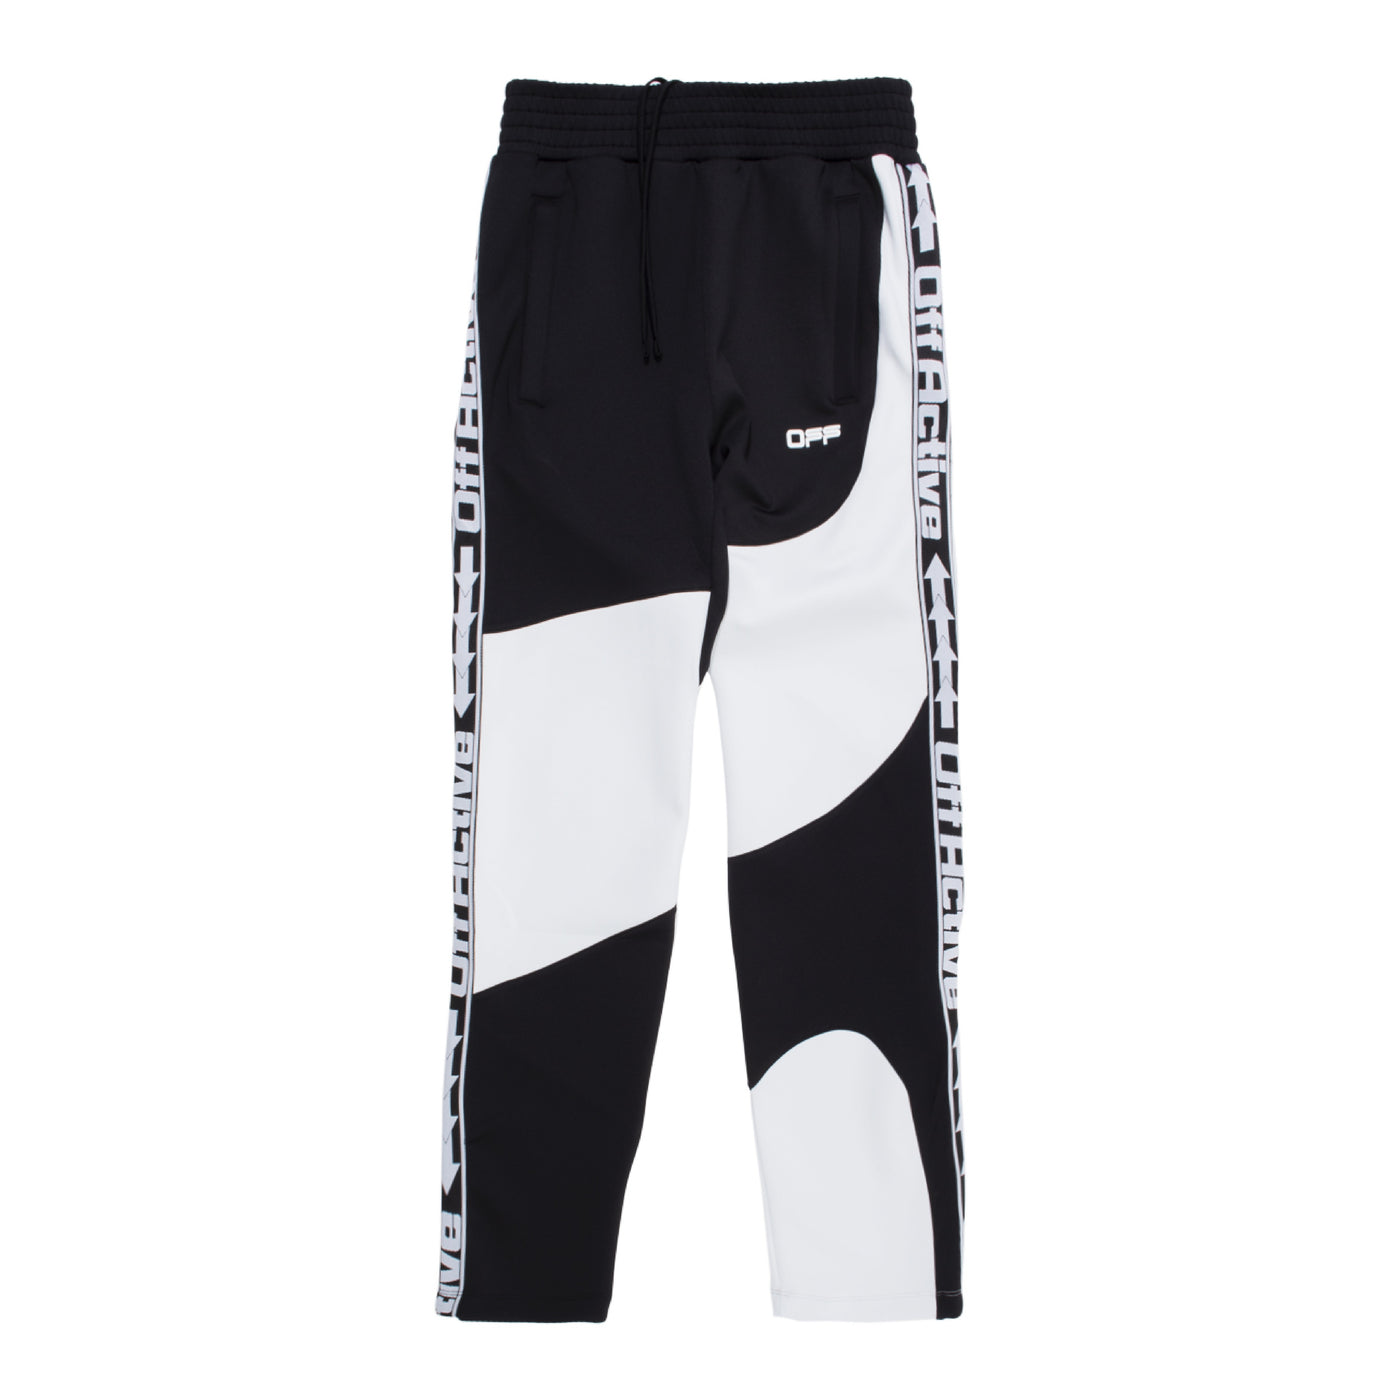 Load image into Gallery viewer, OFF-WHITE ACTIVE TRACK PANT BLACK